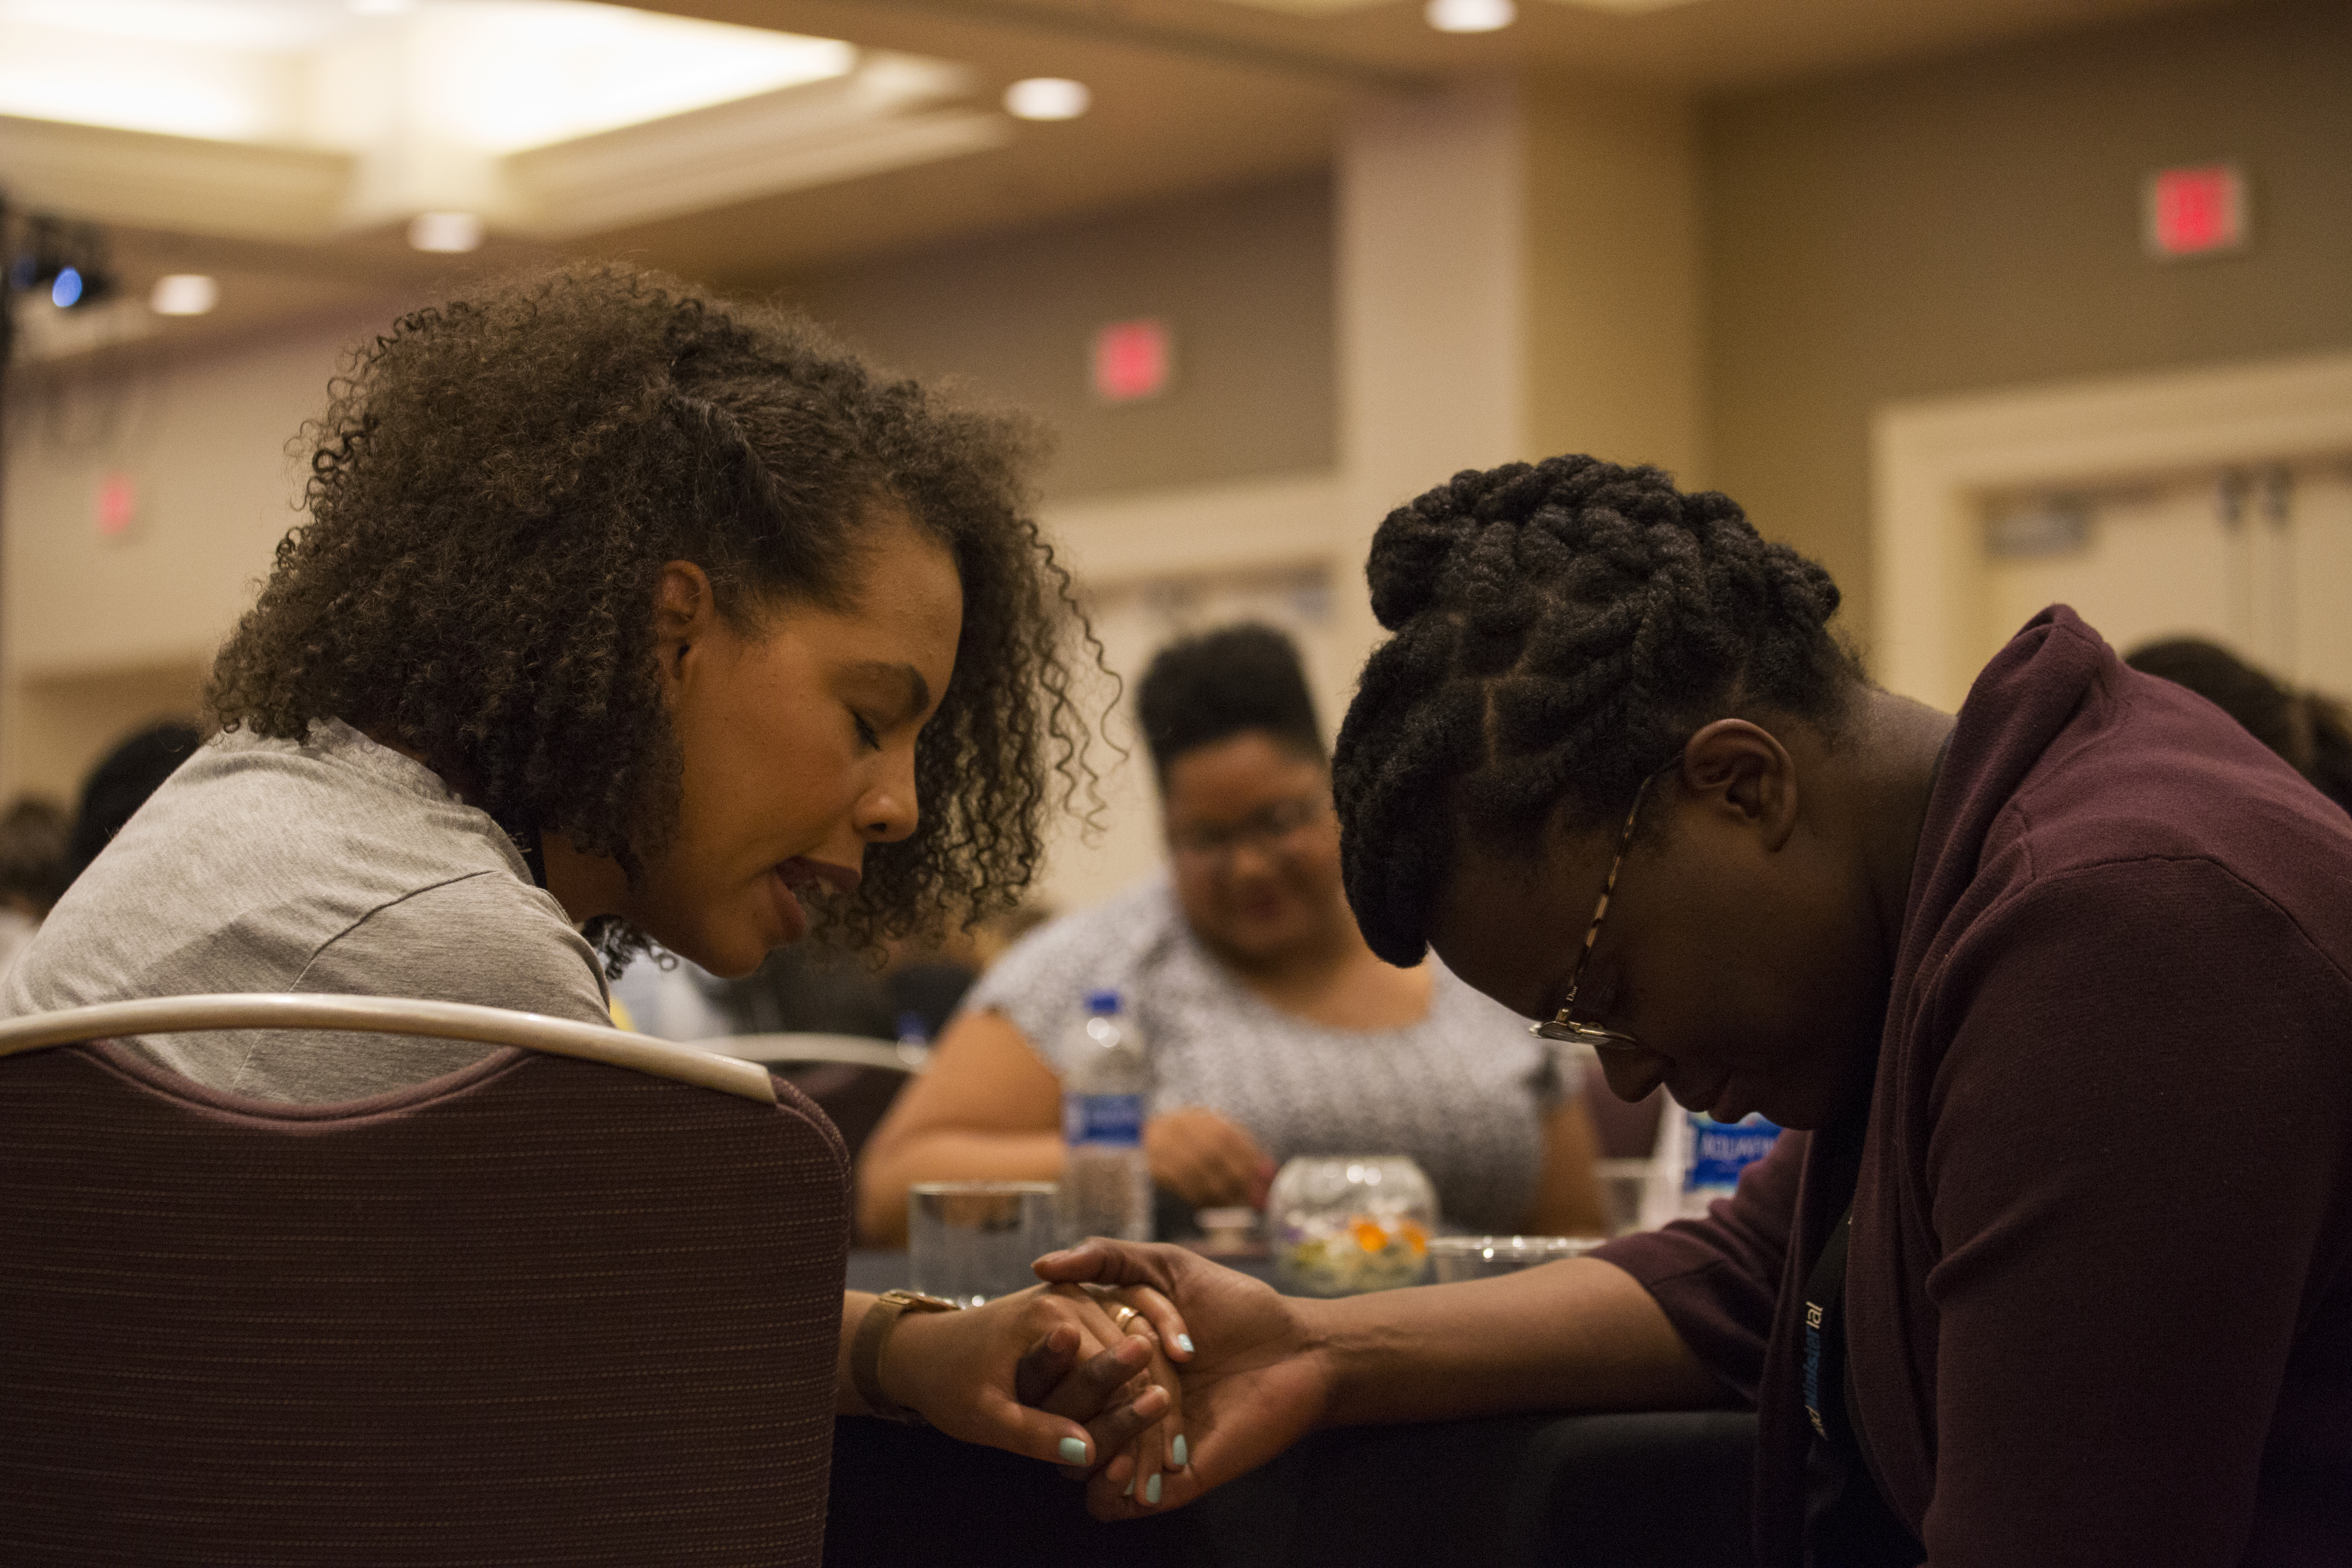 Two women clergy pray for each other during a general session of the 2018 NAD Women Clergy Retreat in Indian Hills, California.